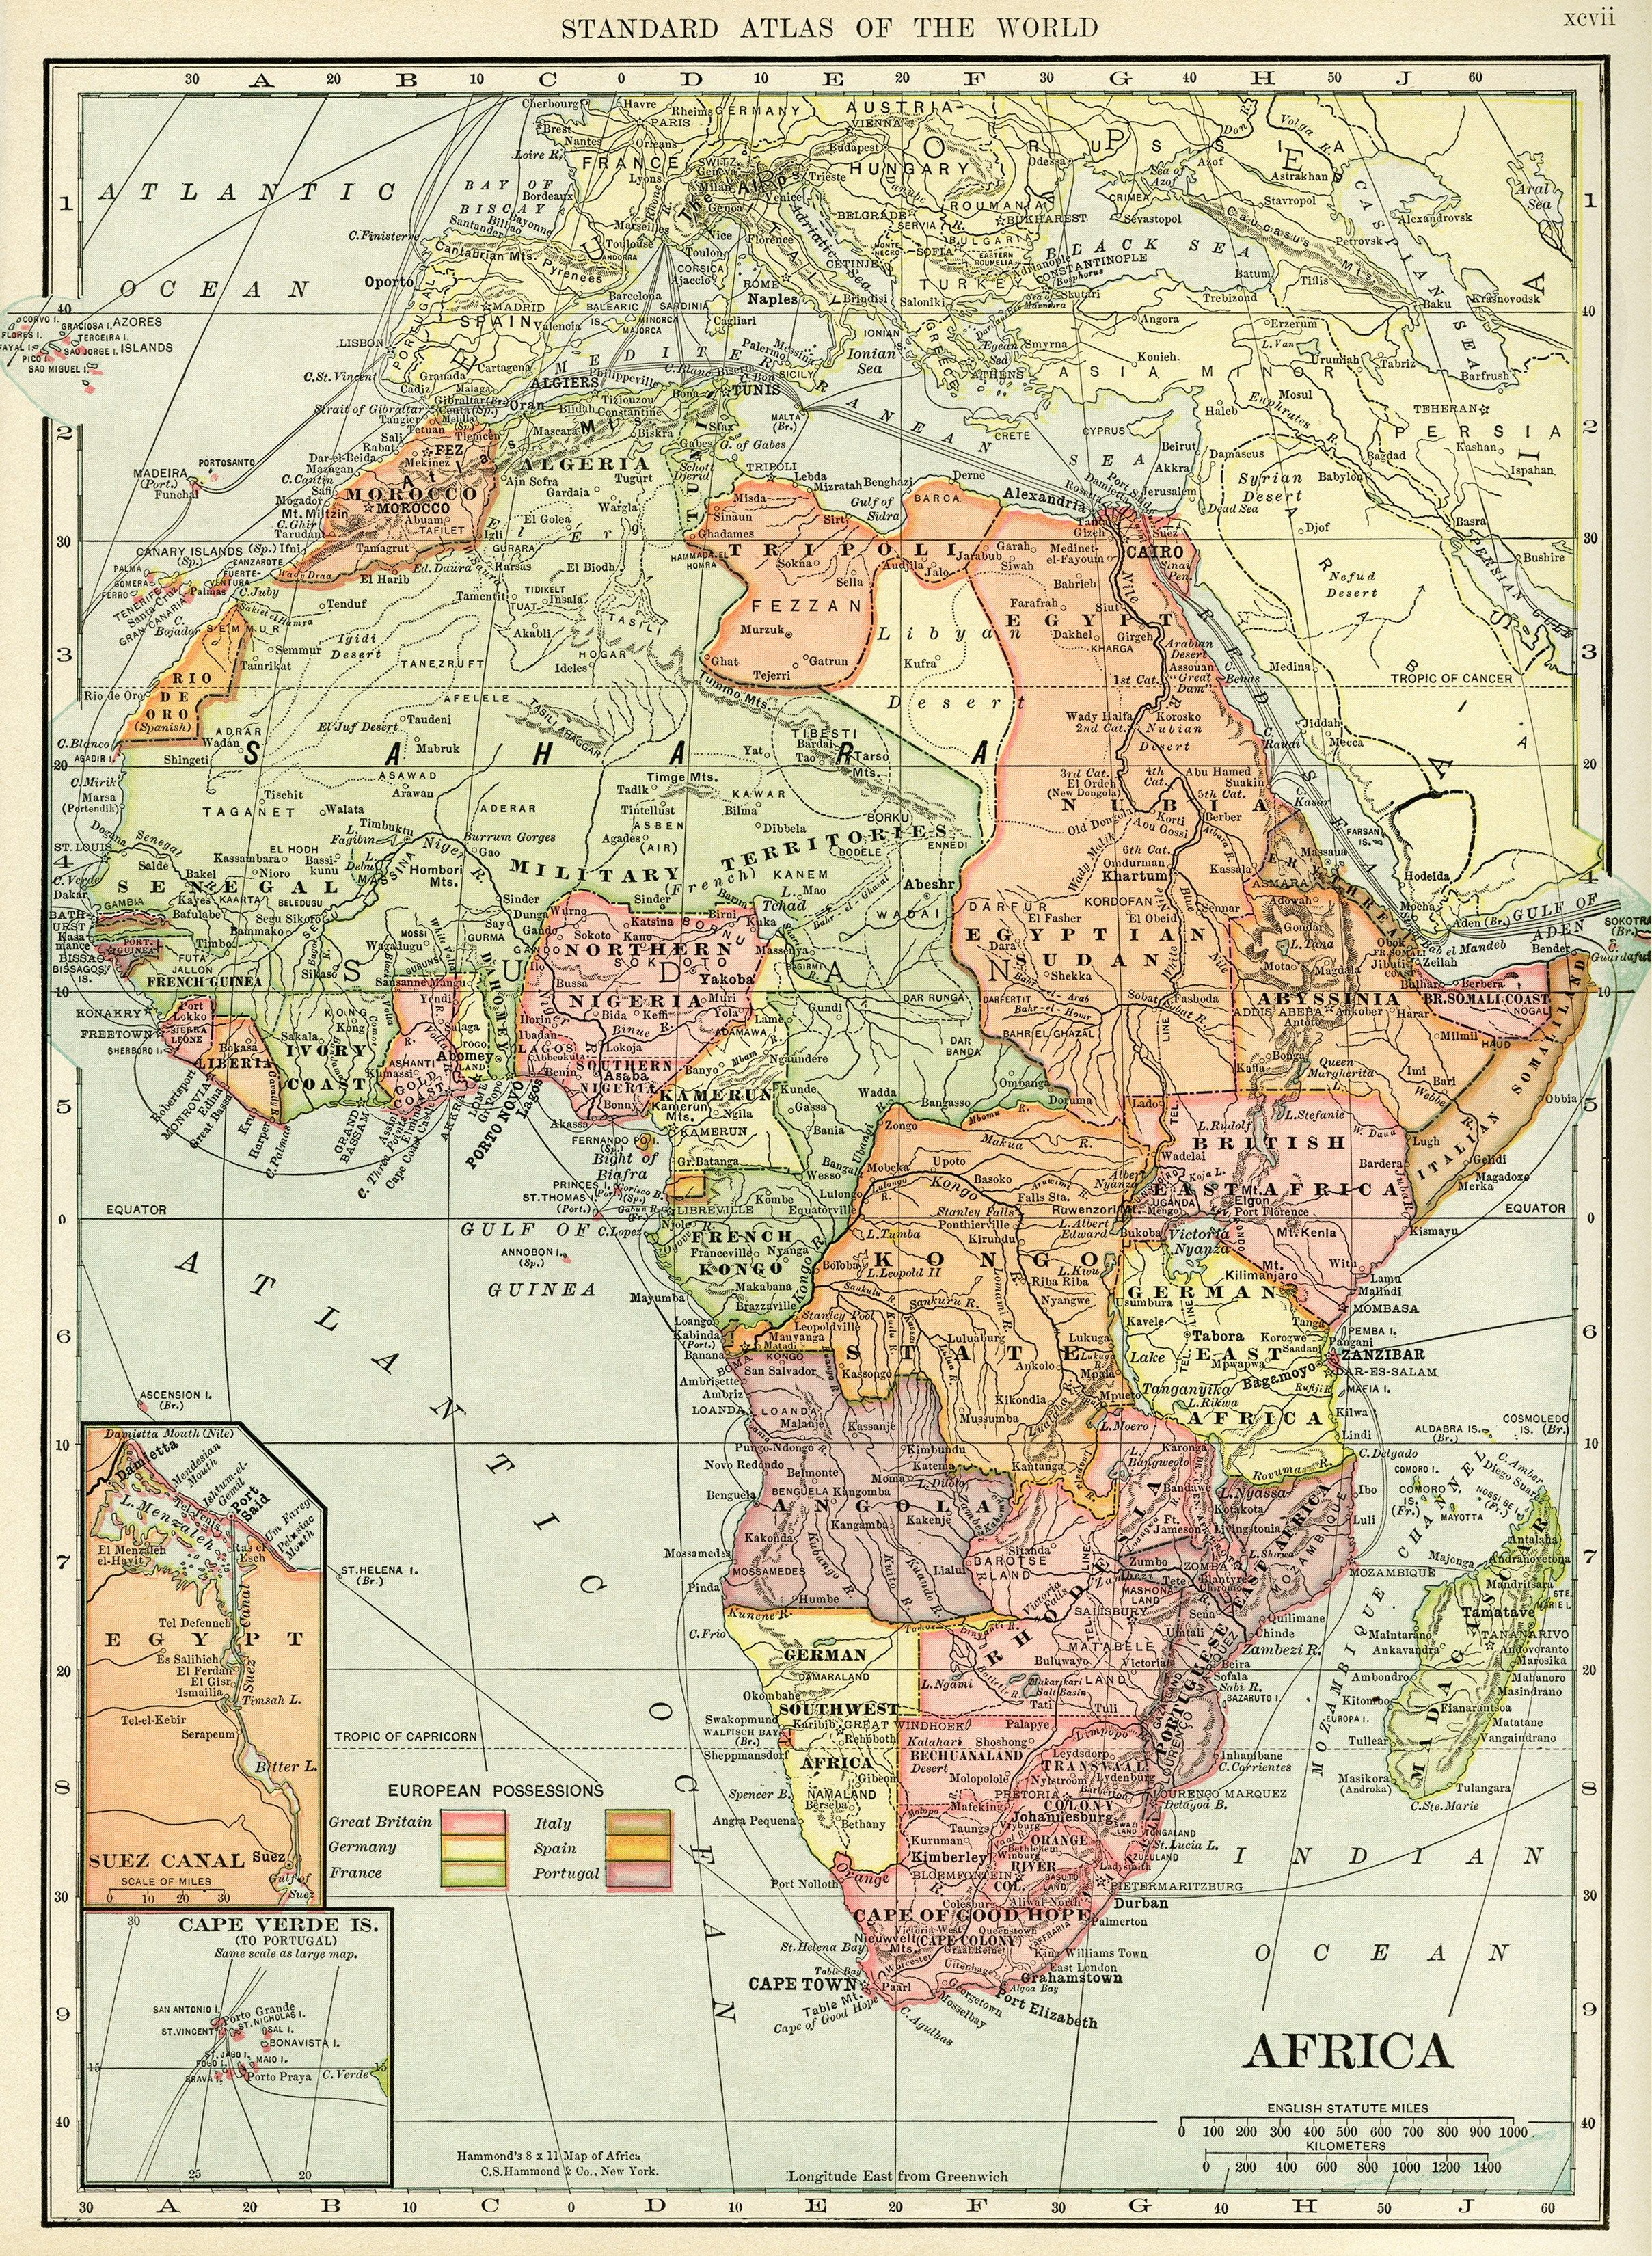 Historical Geography Map Of Africa Free Digital Image